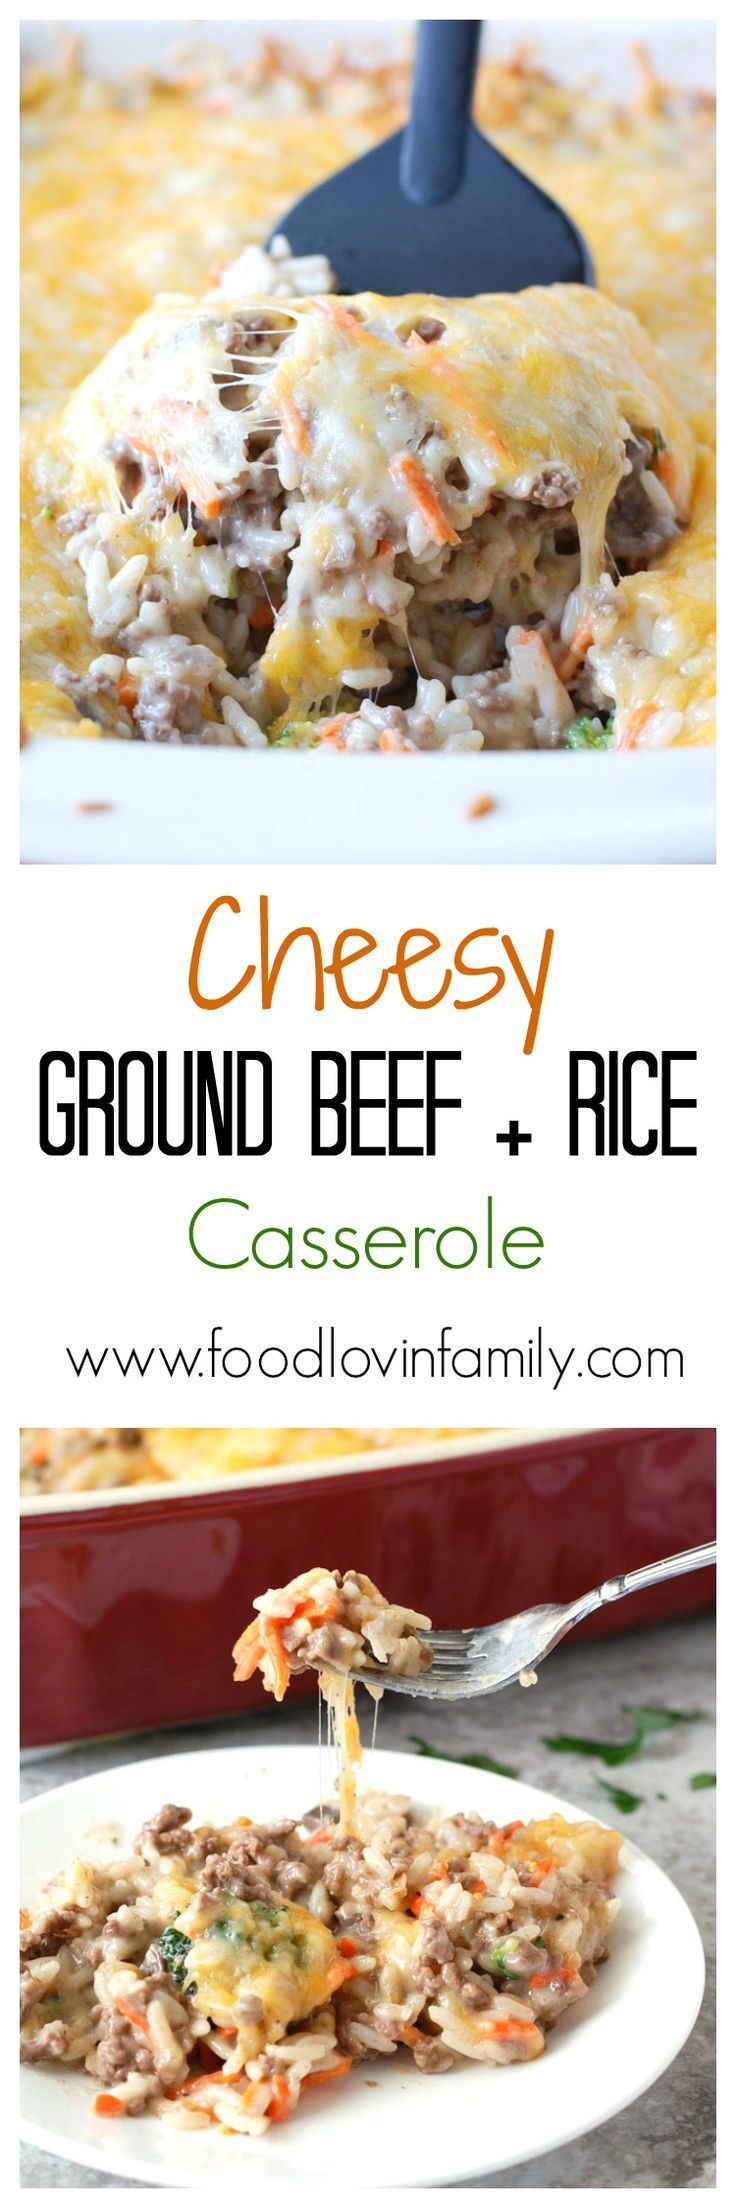 Filled with cheese, ground beef, carrots, broccoli and rice, this cheesy ground beef and rice casserole is a simple, delicious meal great for the whole family. @UncleBens #BensBeginners #UncleBensProm